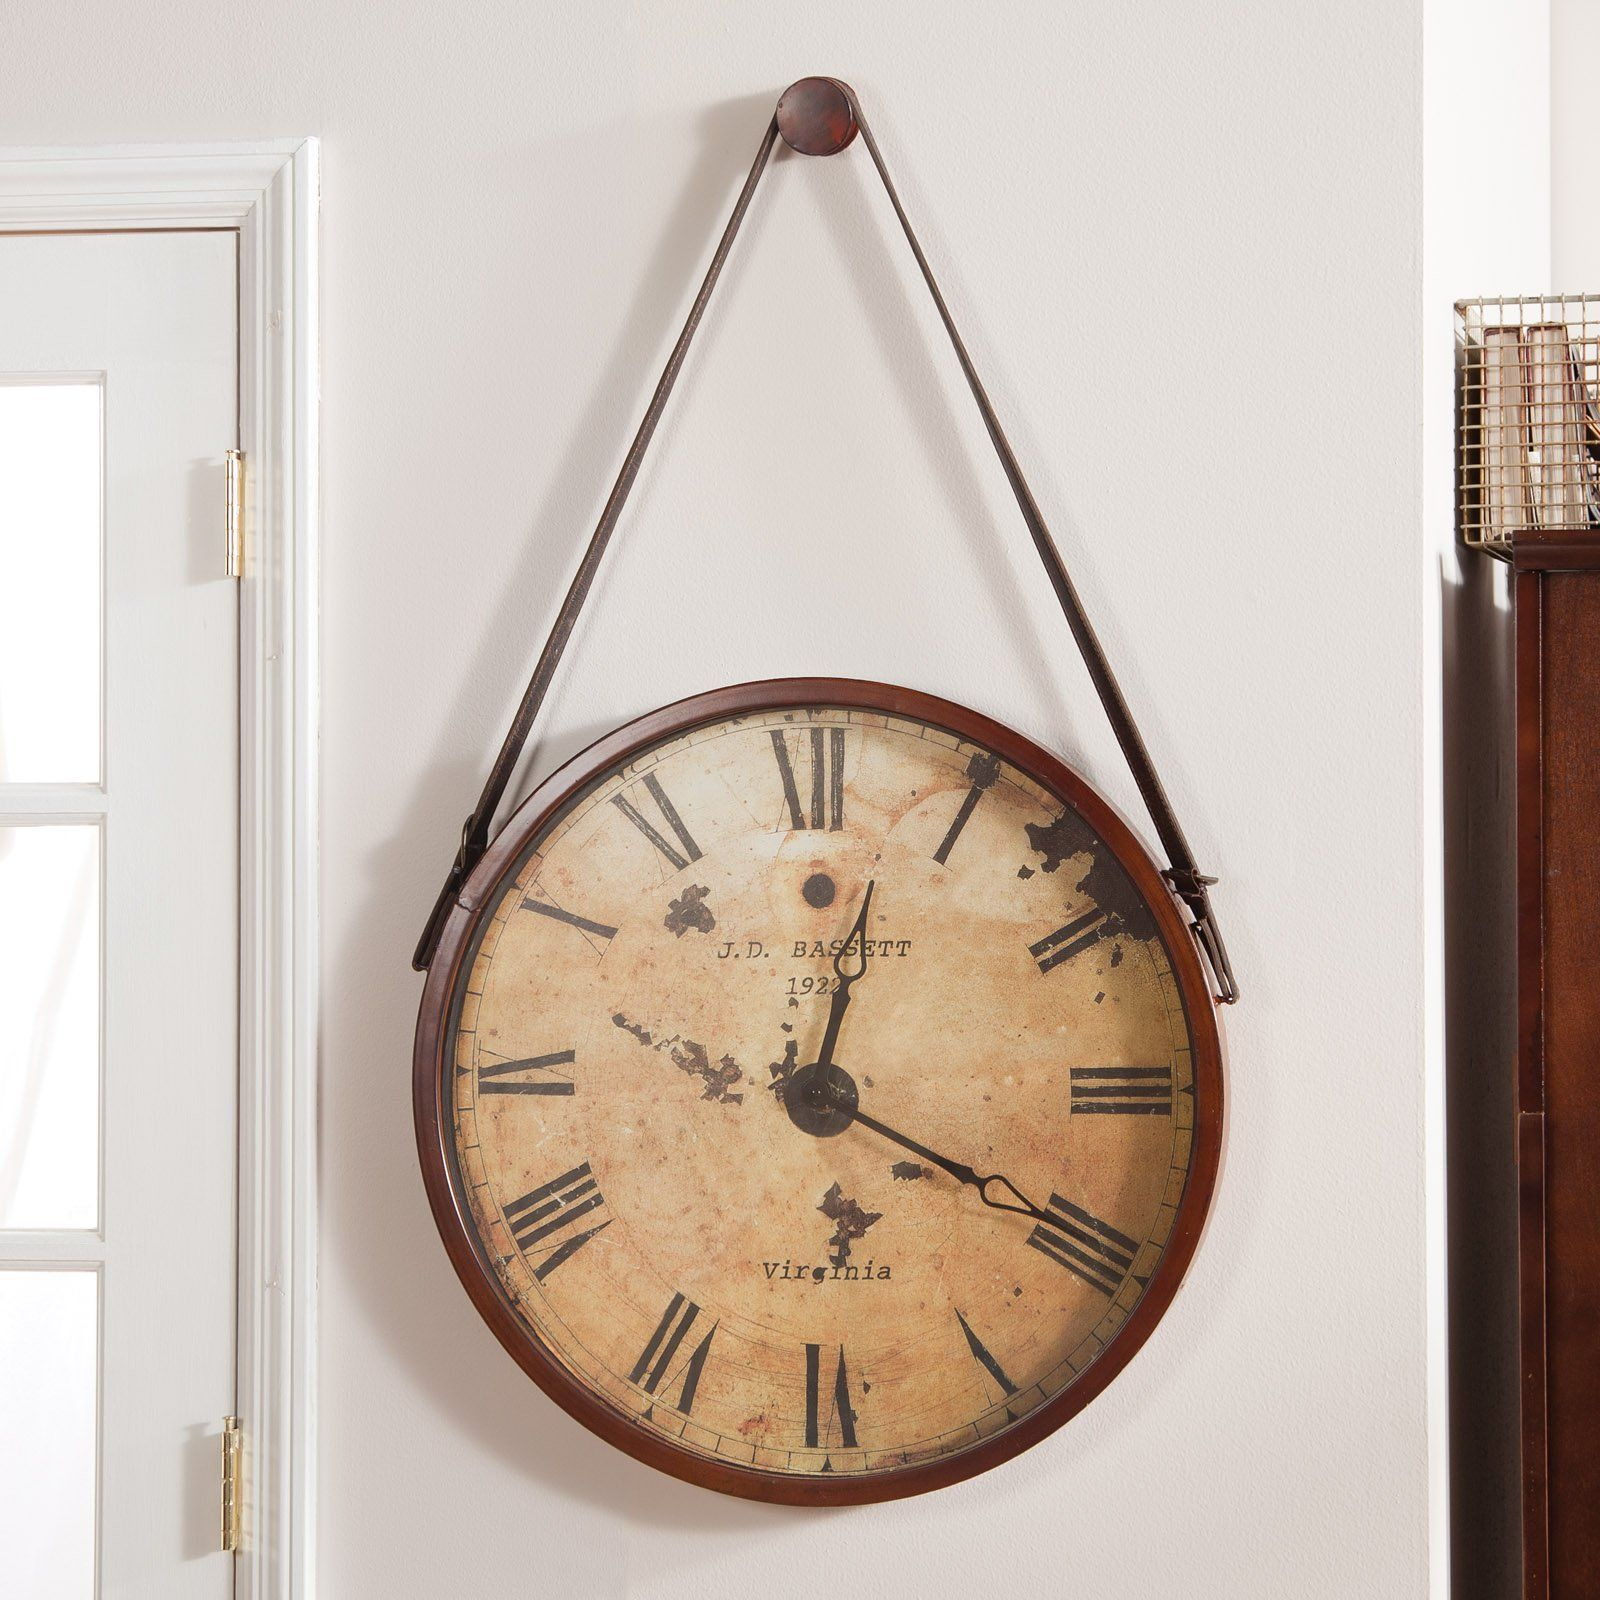 Where To Hang Wall Clock In Living Room Have To Have It Hanging Decorative 24 In Diam Wall Clock